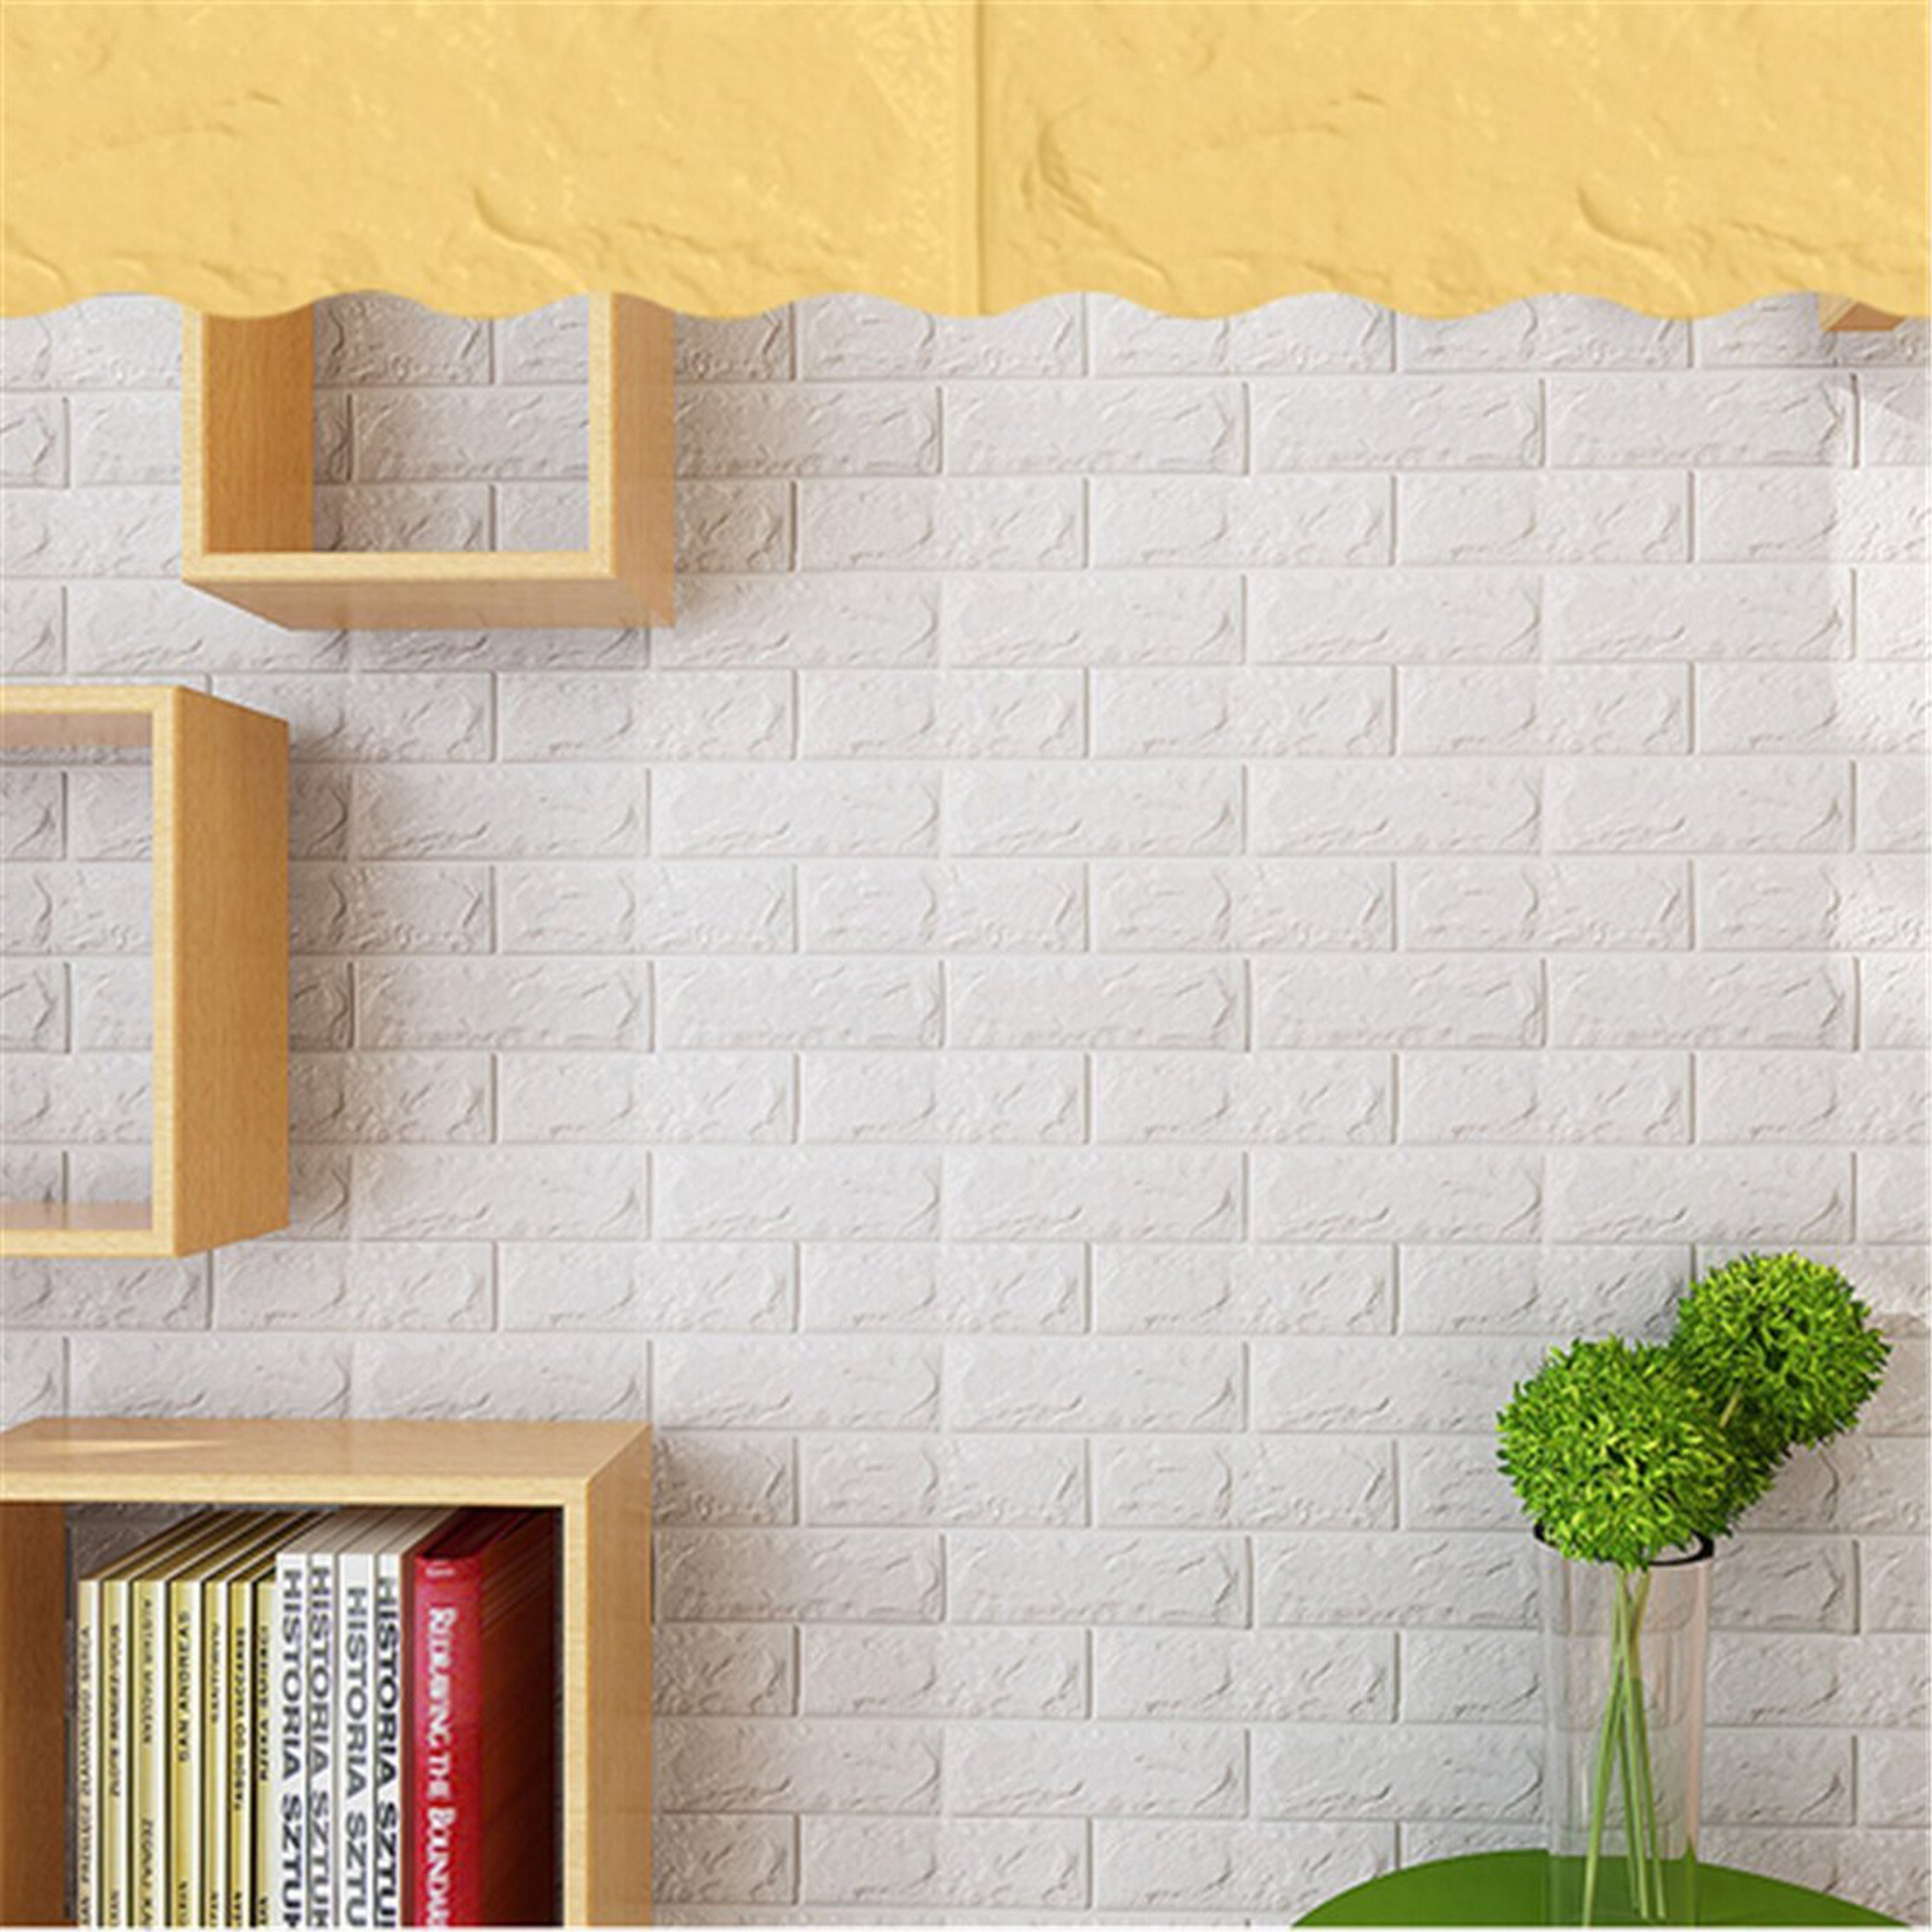 Nk Home Peel And Stick 3d White Brick Wall Stickers Panels Wallpaper Bedroom Living Room Modern Decor Decal Accent Sofa Background Tv Walls 5 Piece Walmart Com Walmart Com